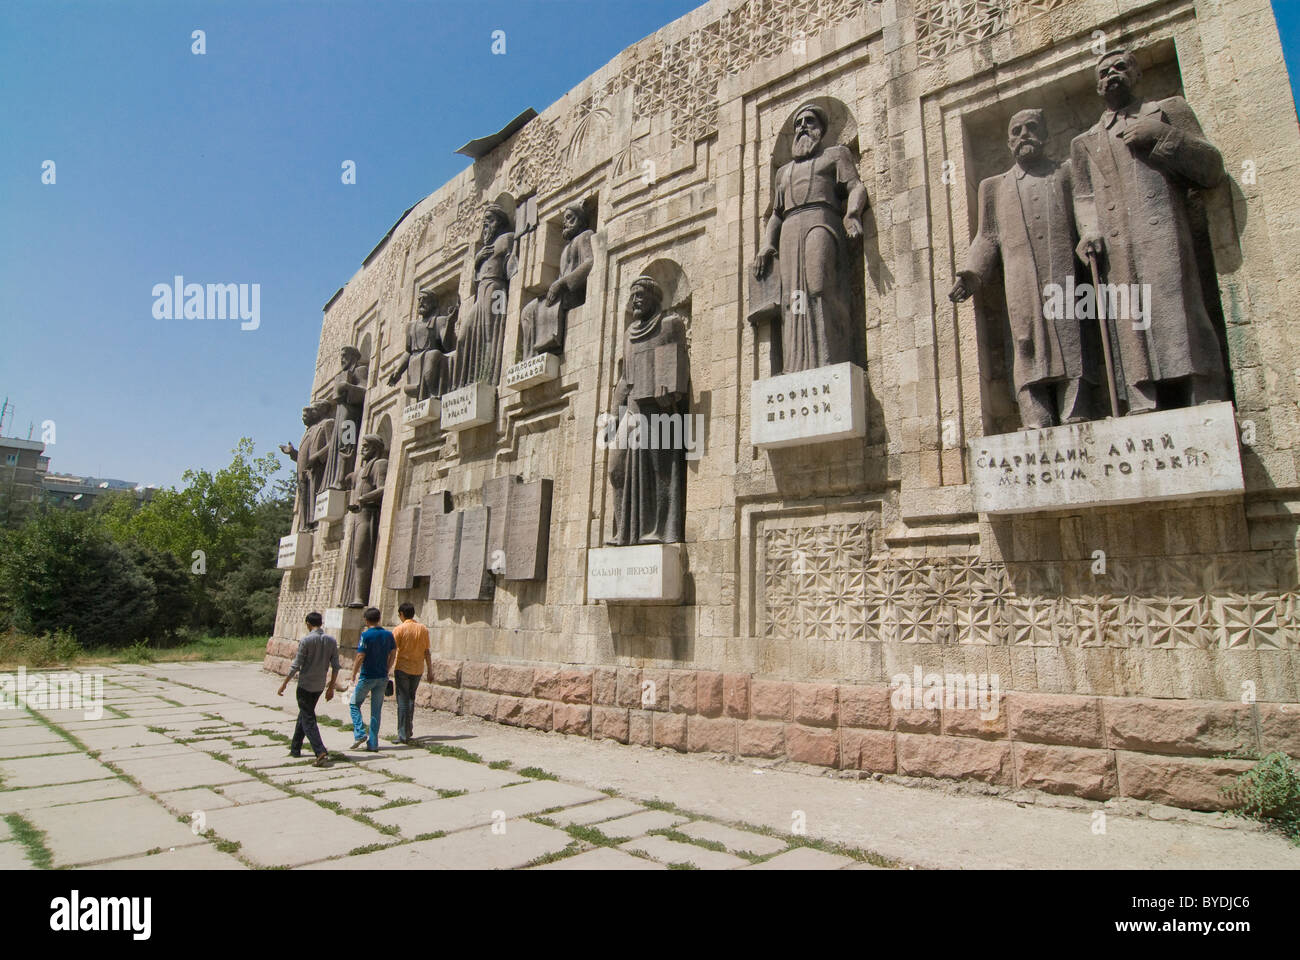 Writers Union Building, Dushanbe, Tajikistan, Central Asia - Stock Image